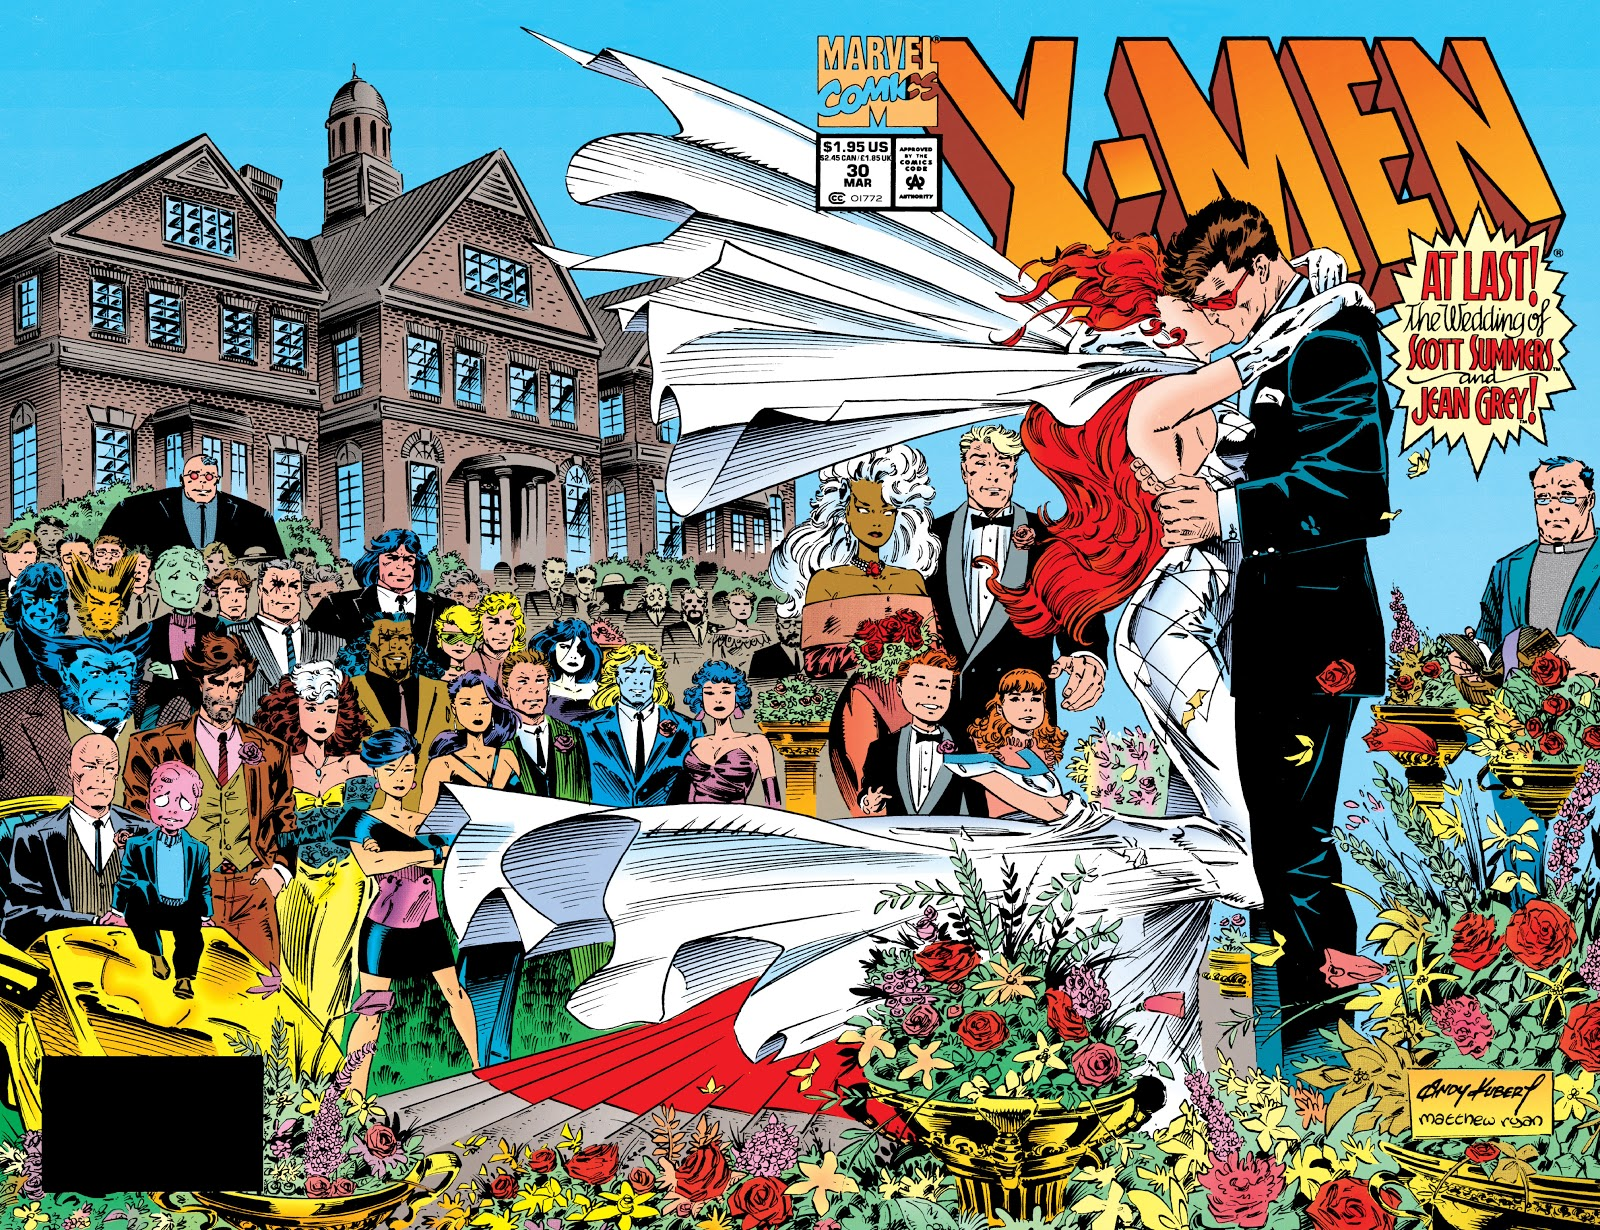 Jean and Scott kissing at wedding in front of assembled friends outside the X-Mansion